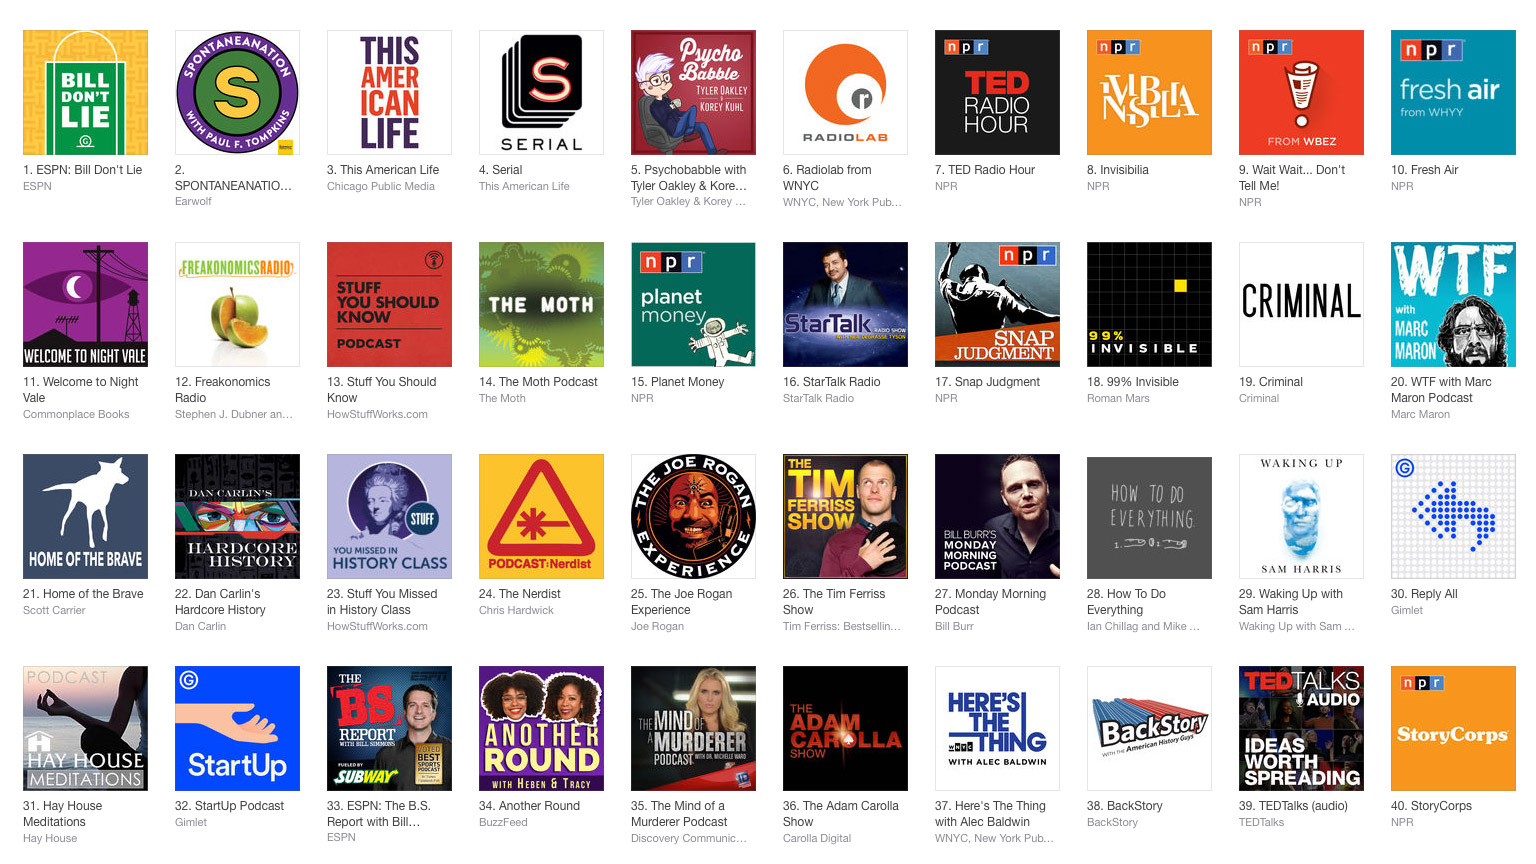 Podcasts in the iTunes Store